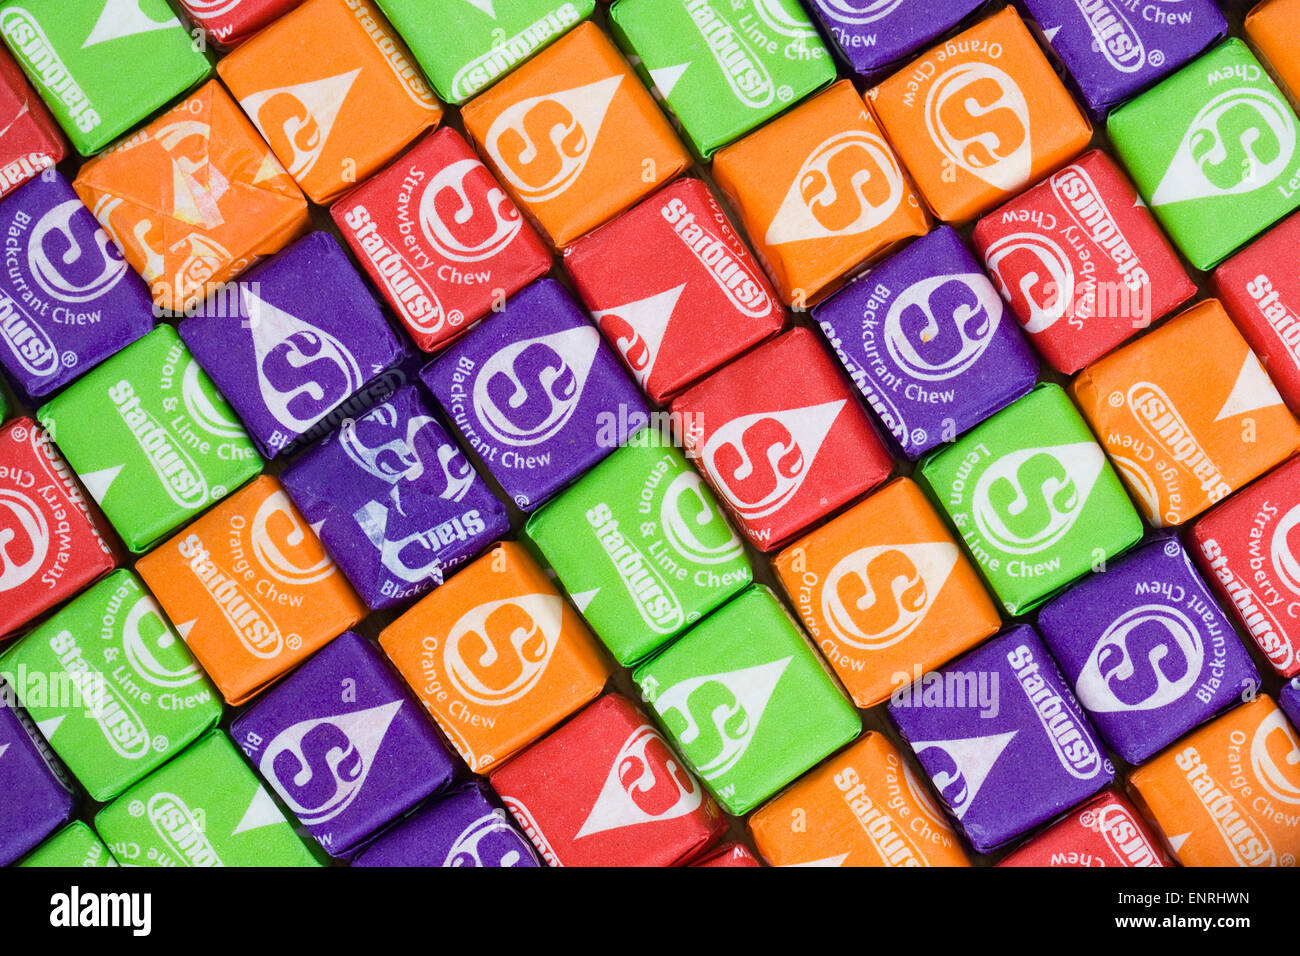 Starburst Deutsch